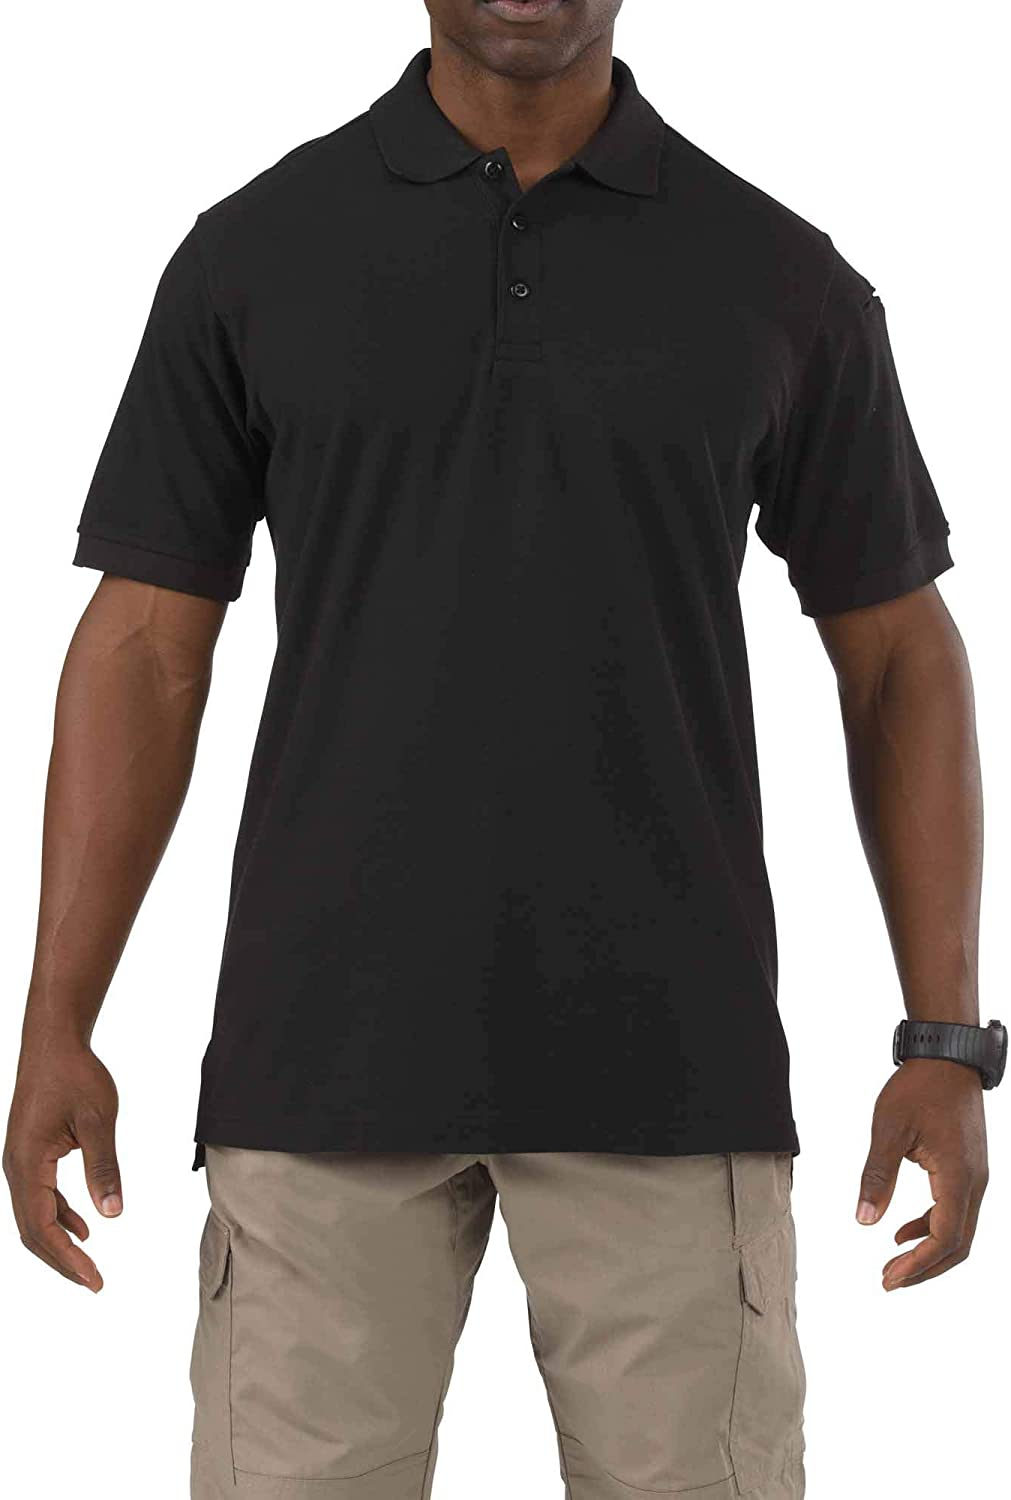 5.11 Tactical Men's Utility Short Sleeve Polo Shirt, Poly-Cotton Fabric, Wrinkle Resistant, Style 41180